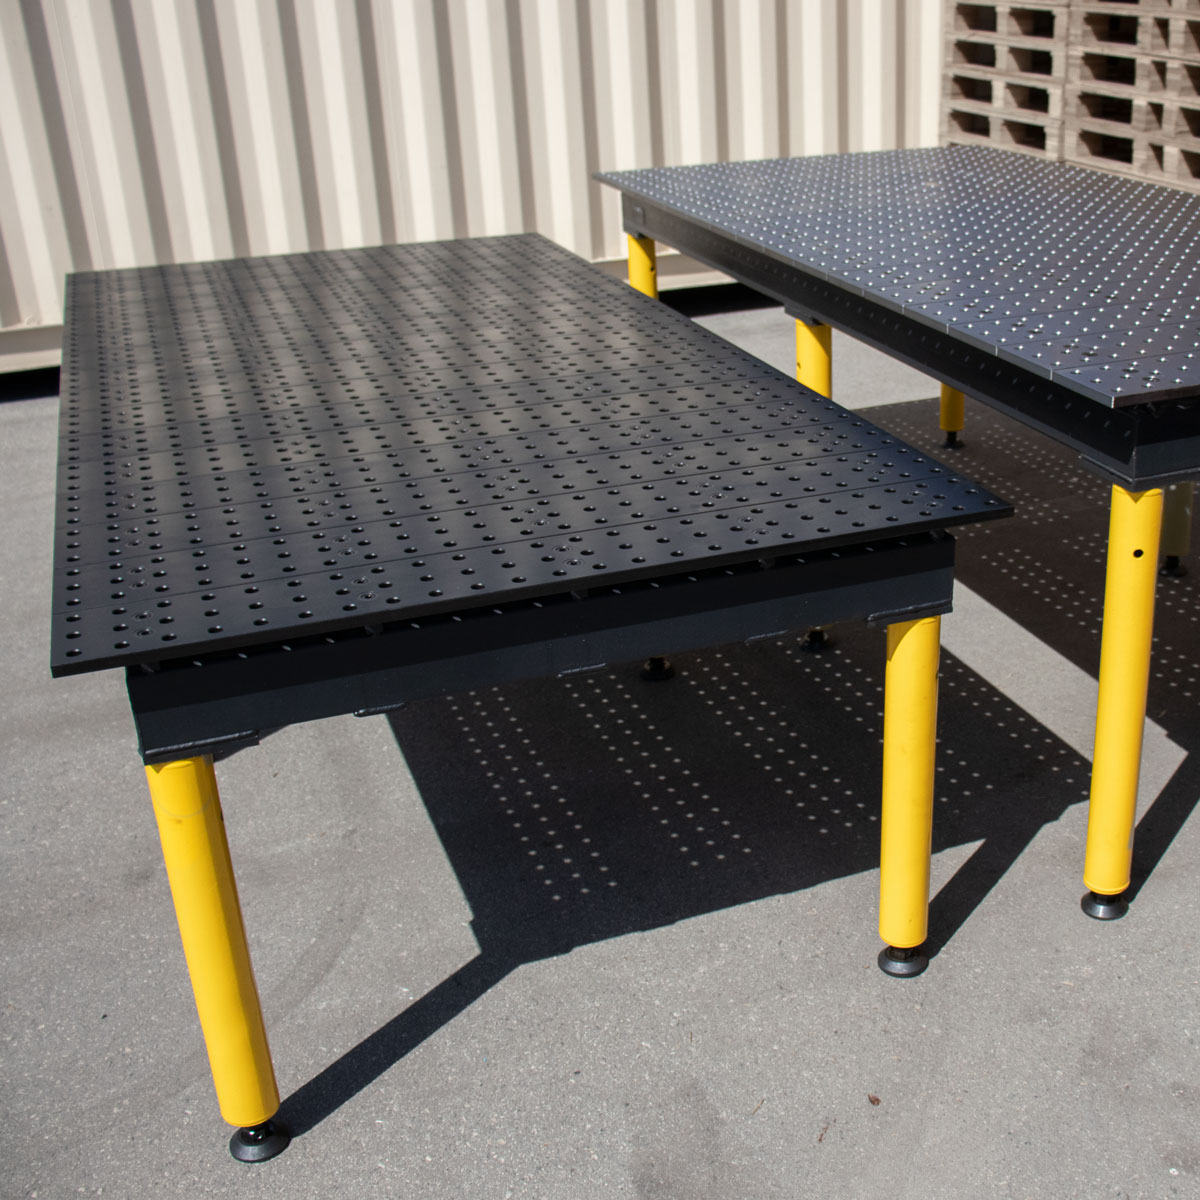 nitrided and standard max tables side by side